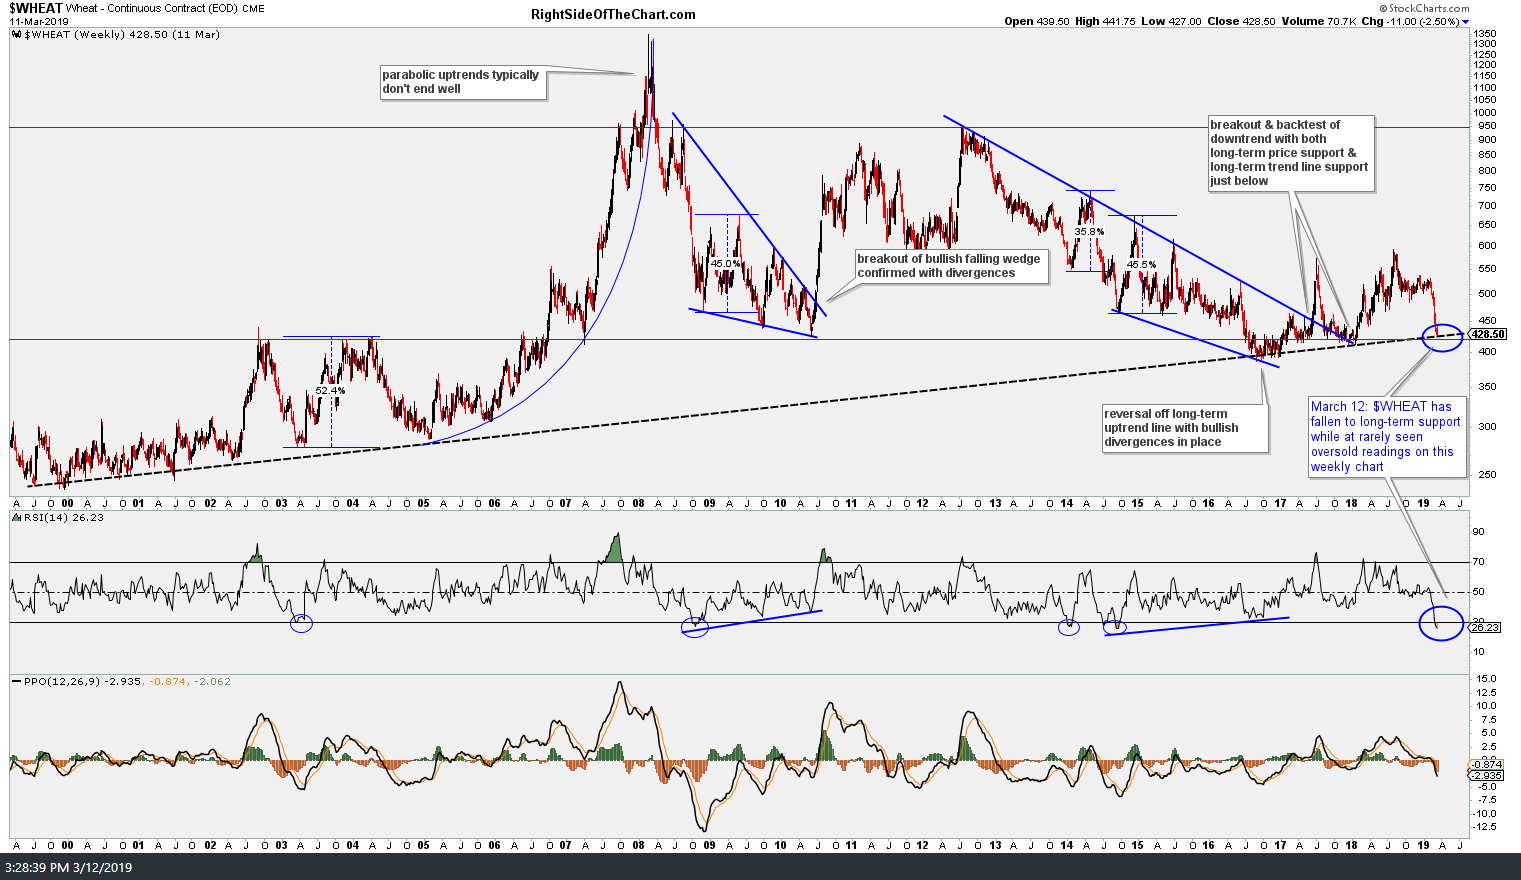 WEAT Wheat ETN Trade Setup Right Side Of The Chart